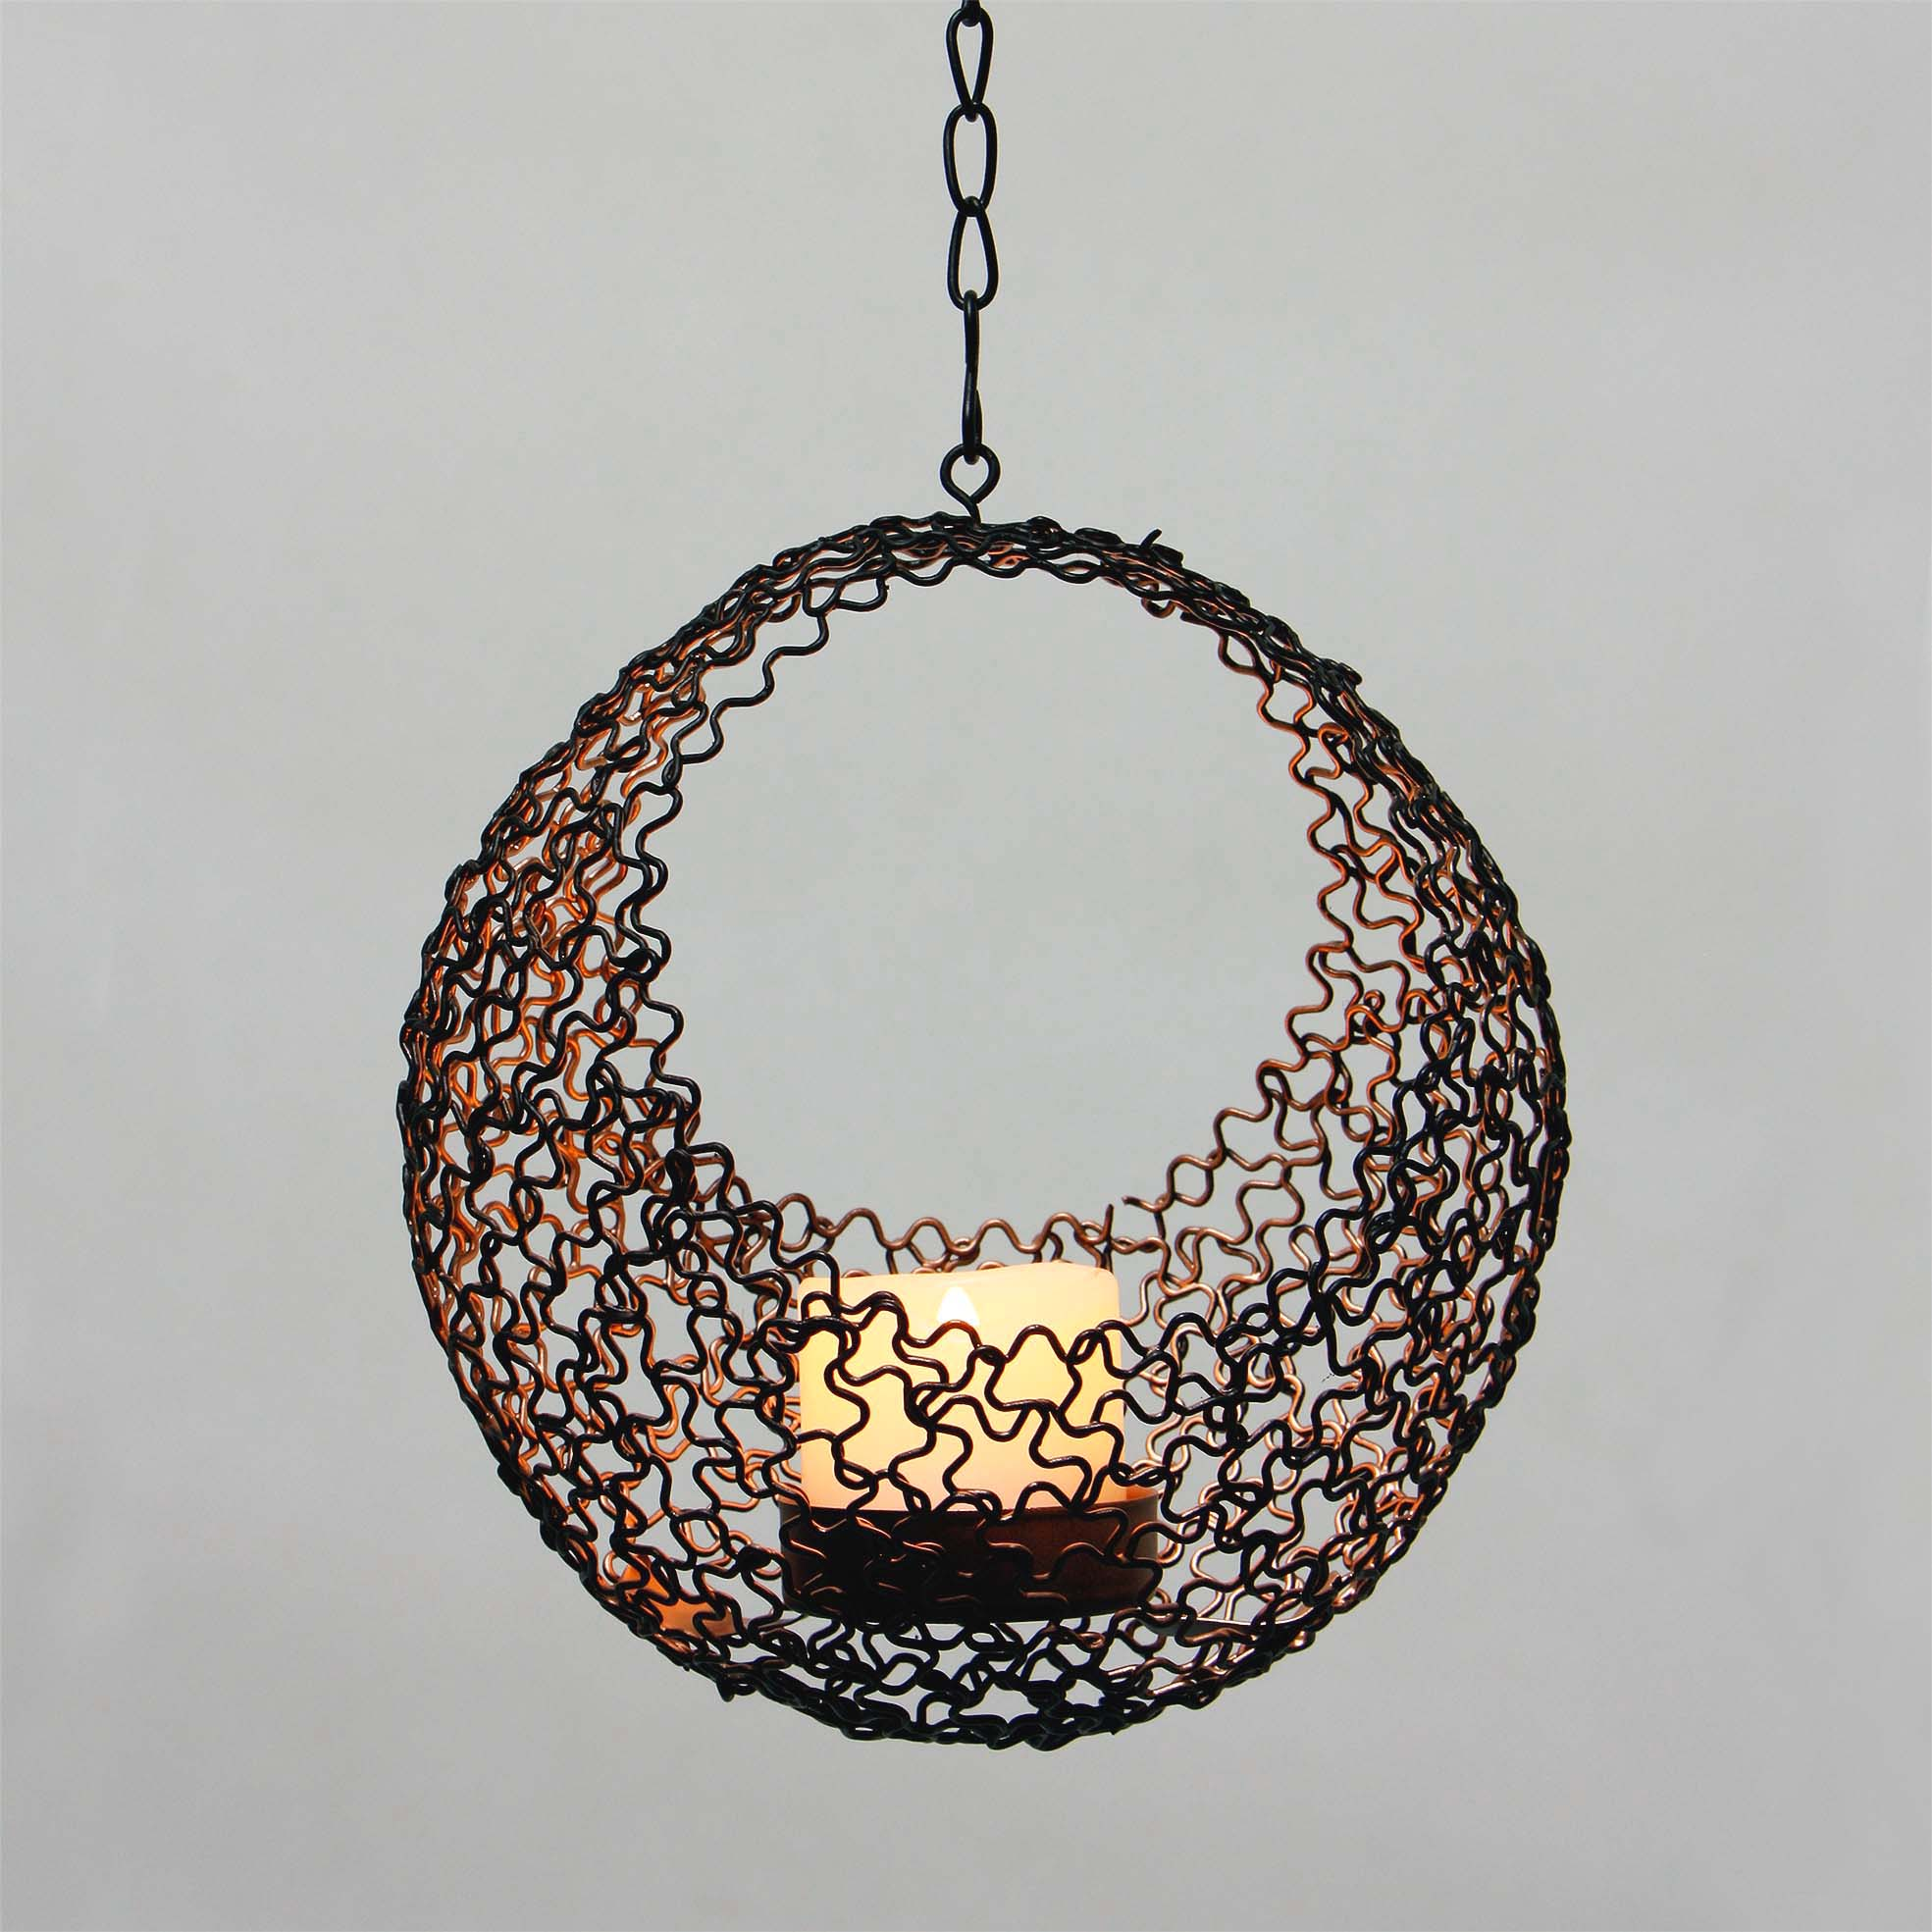 Solar Umbrella Dangler Metal Wire Candle Holder Featured Image